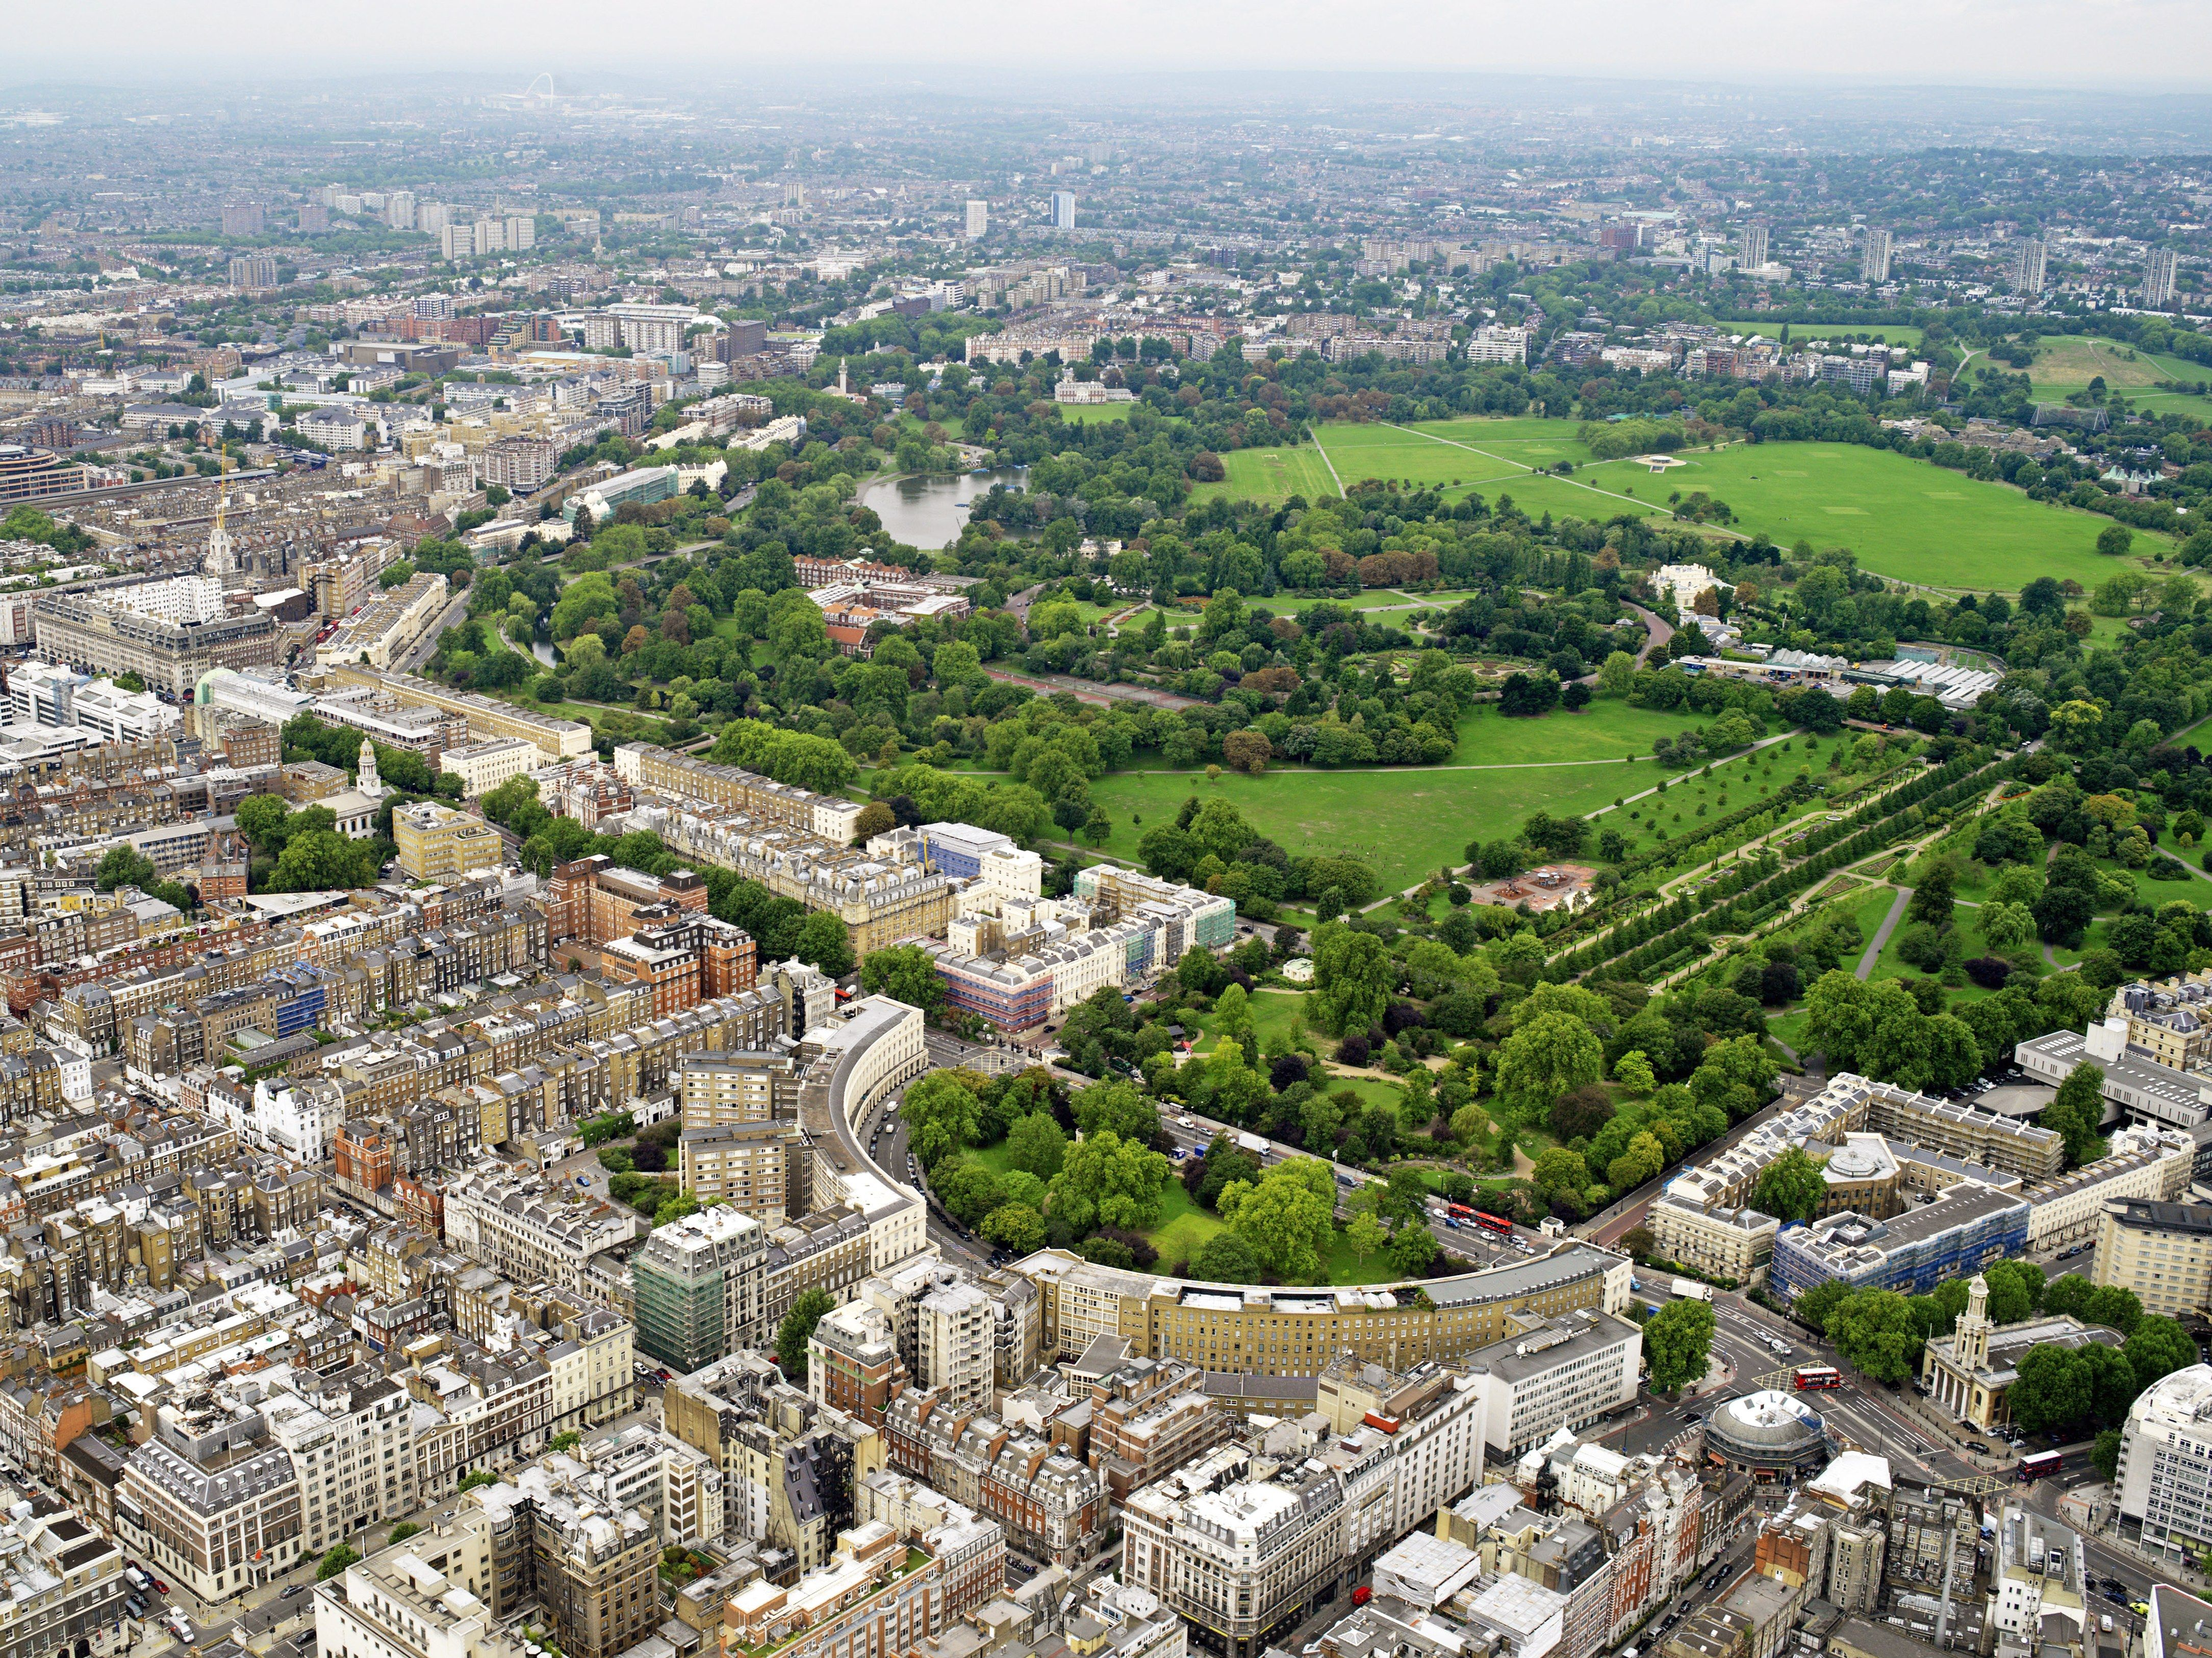 Billedresultat for regents university london aerial view